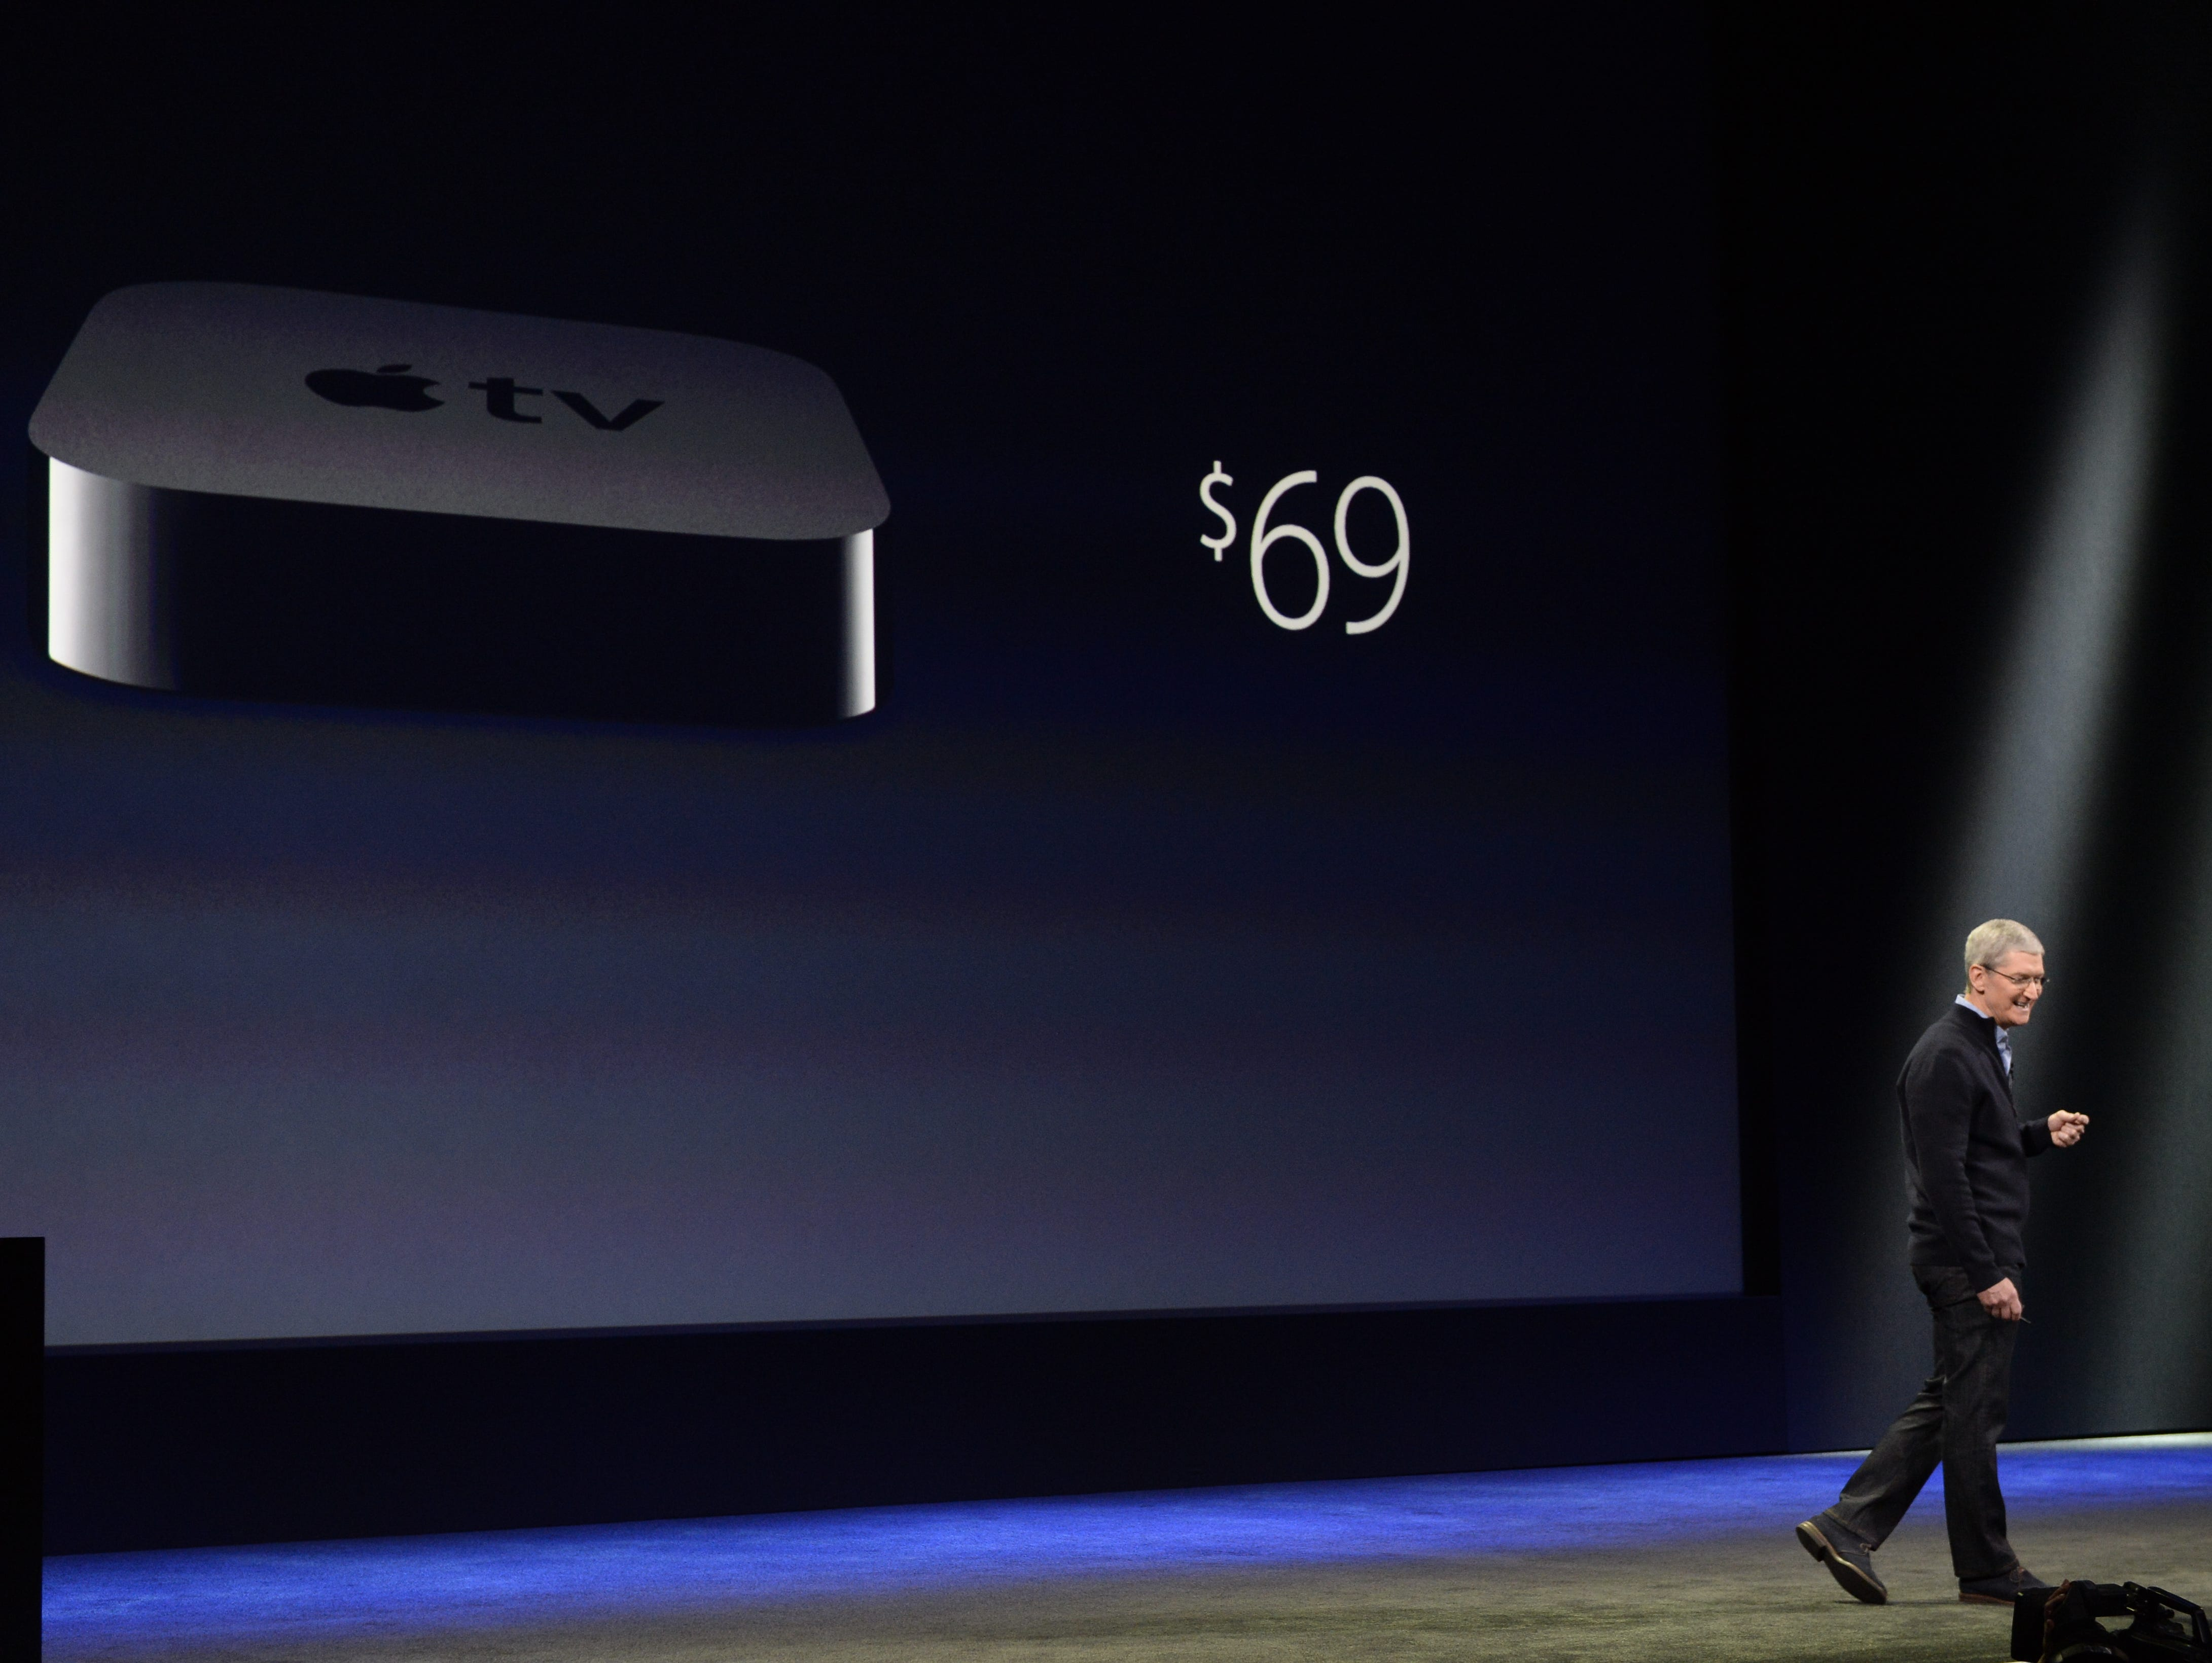 Tim Cook, CEO of Apple, announces a price drop on Apple TV to $69 on March 9, 2015 at the Yerba Center for Performing Arts in San Francisco.